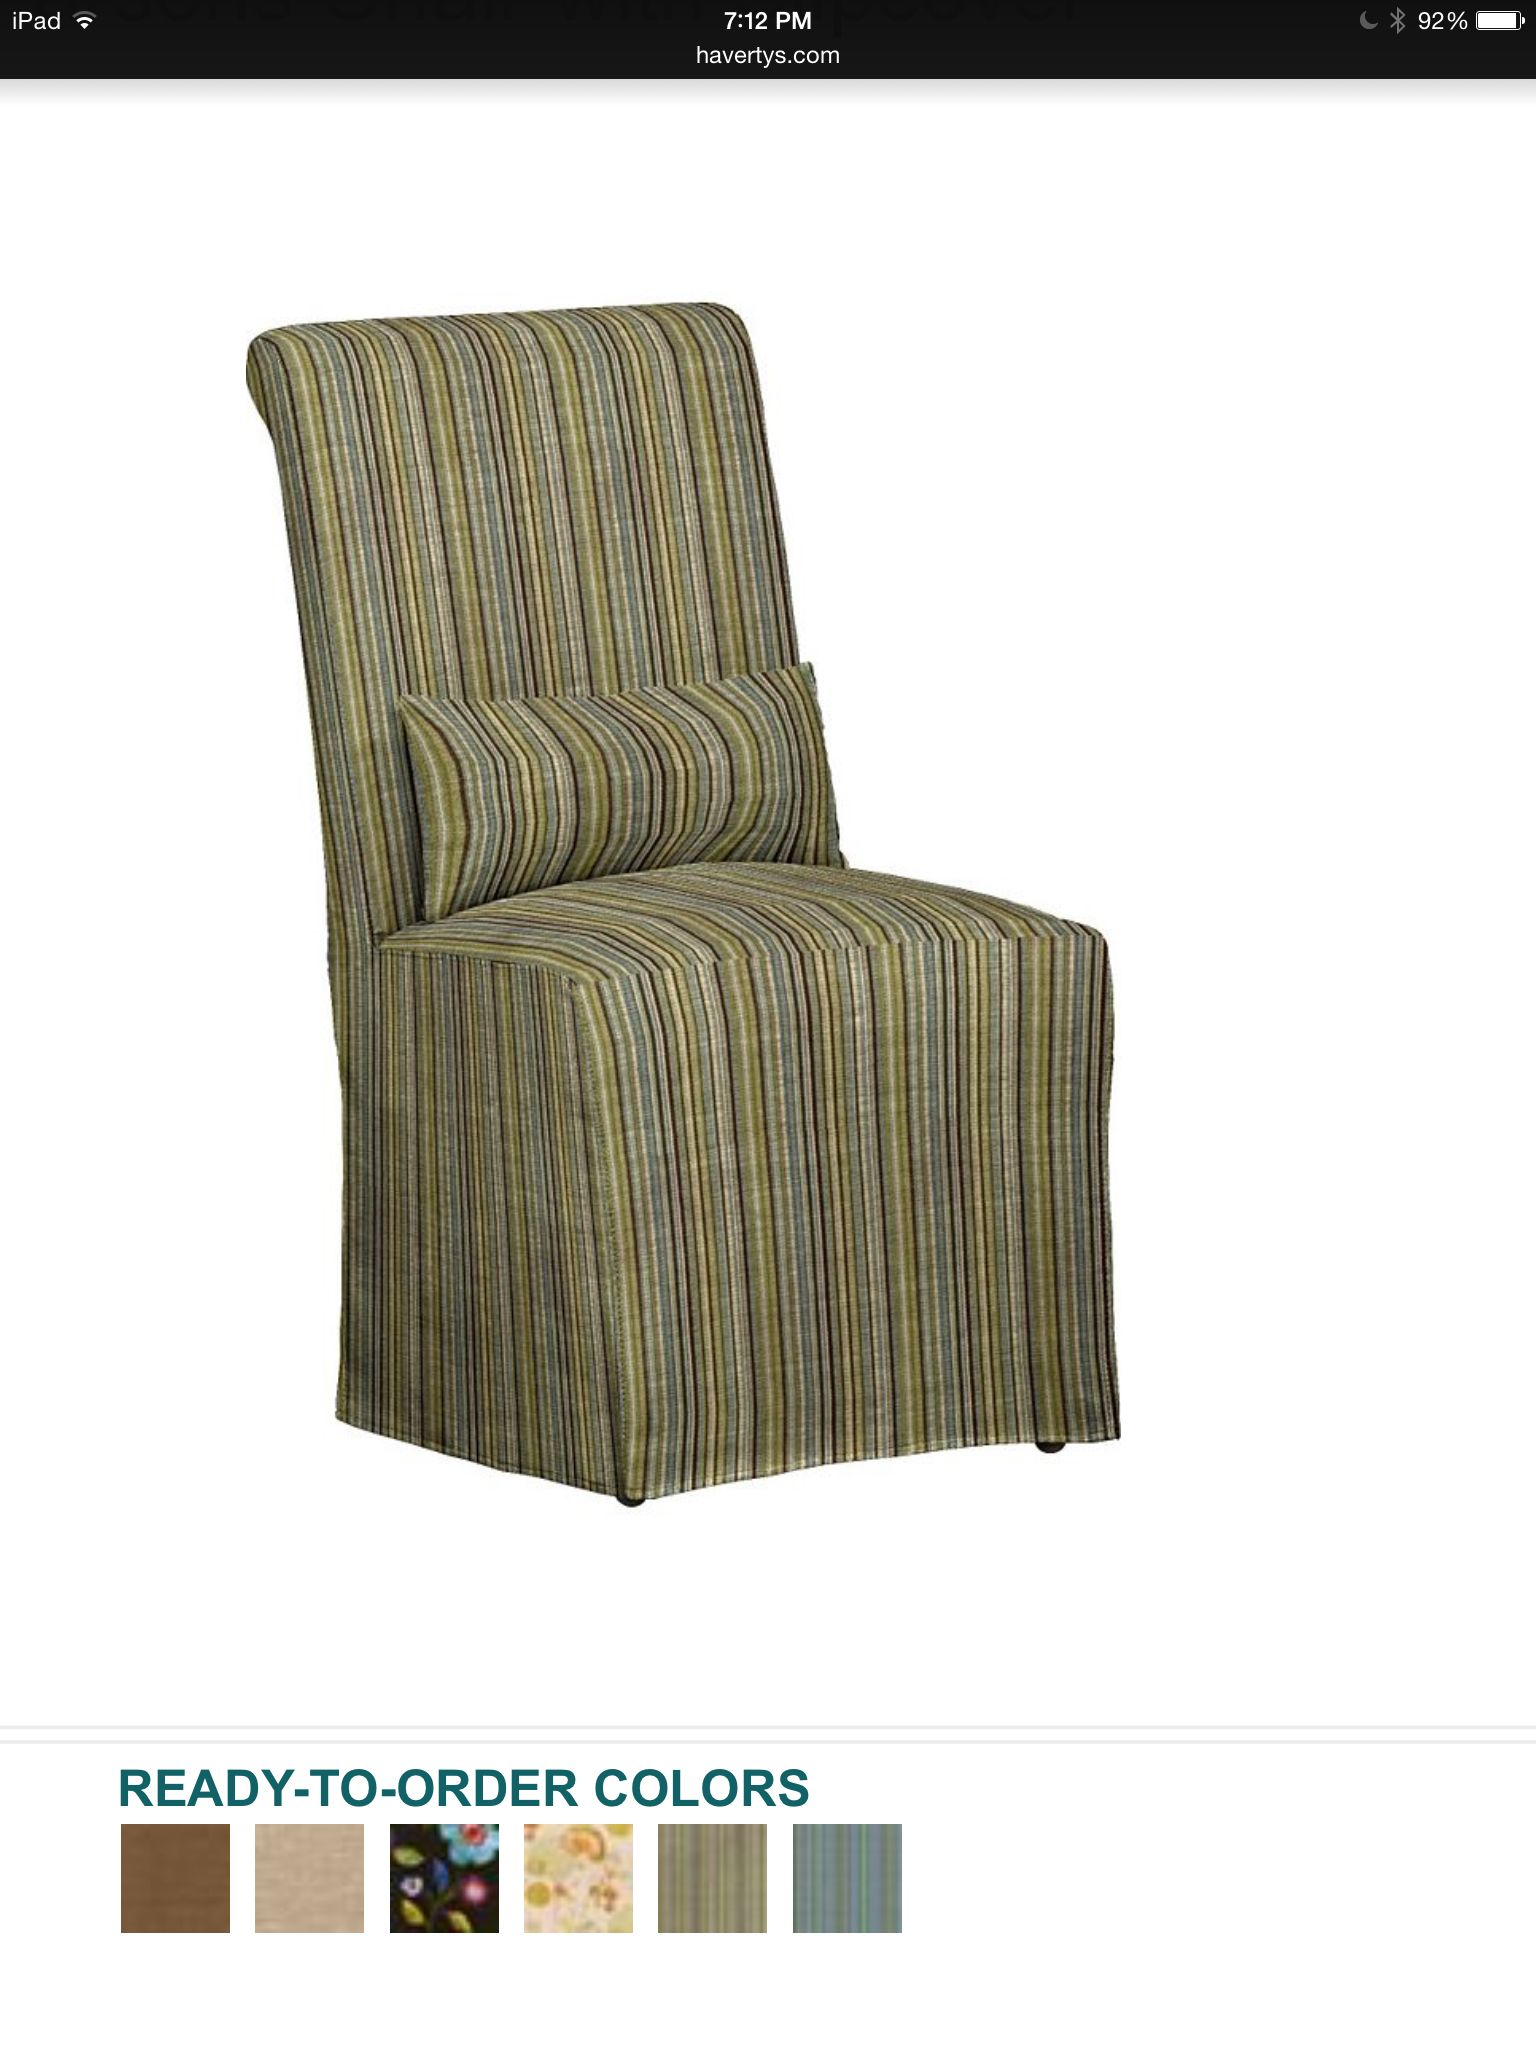 Mariah Dining Chair From Havertyu0027s.